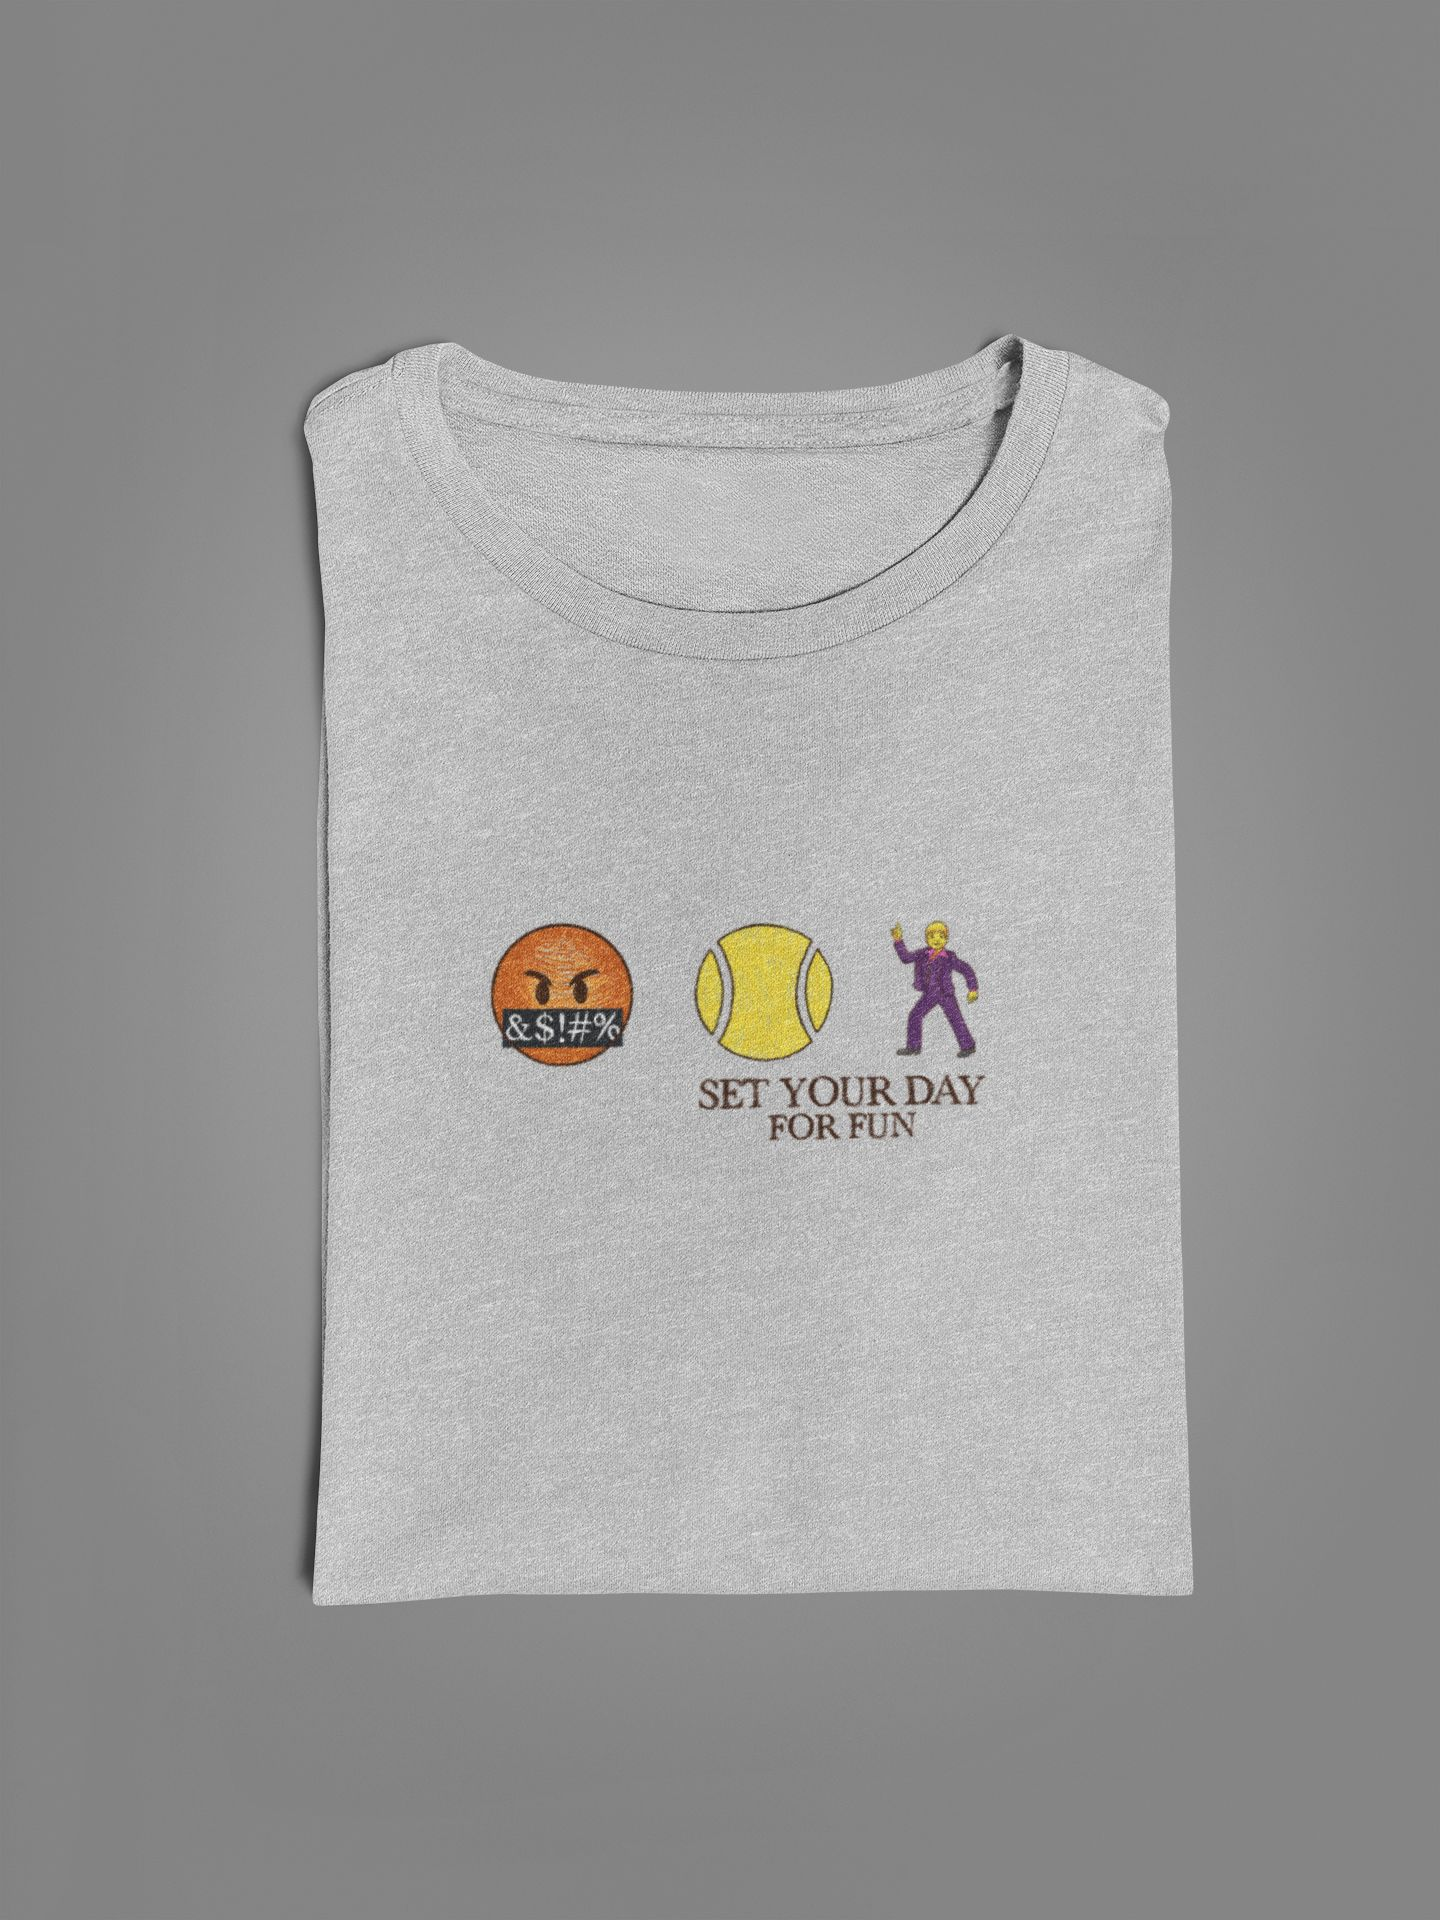 Camiseta SET YOUR DAY - FOR FUN  >> Coleção 2019 >> MASCULINA